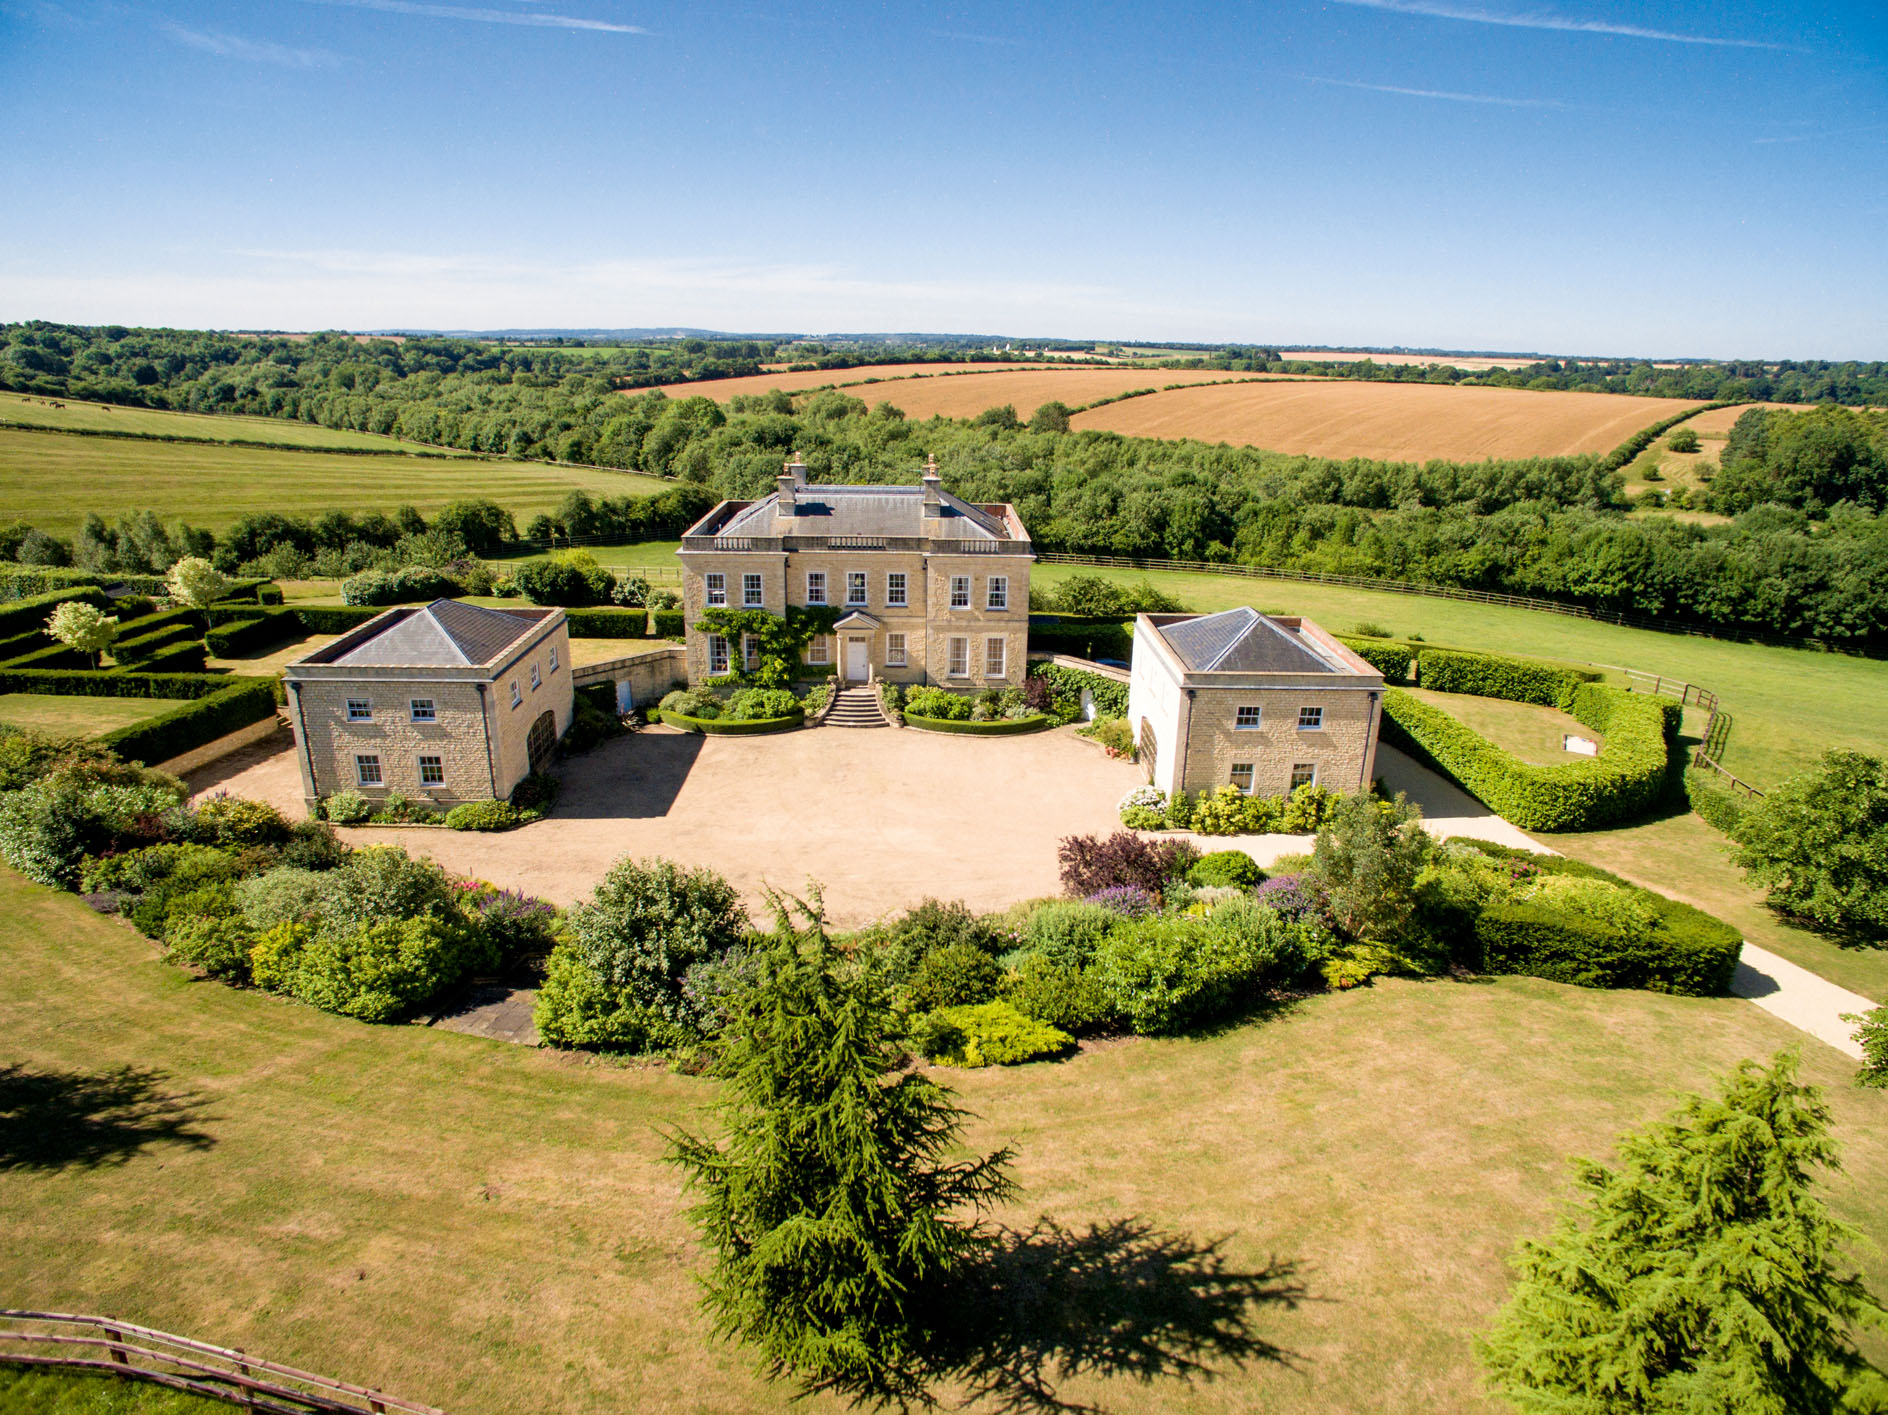 A neo-Classical 338-acre equestrian estate on the edge of the Cotswolds, complete with pavilions, indoor pool and wine cellar - Country Life